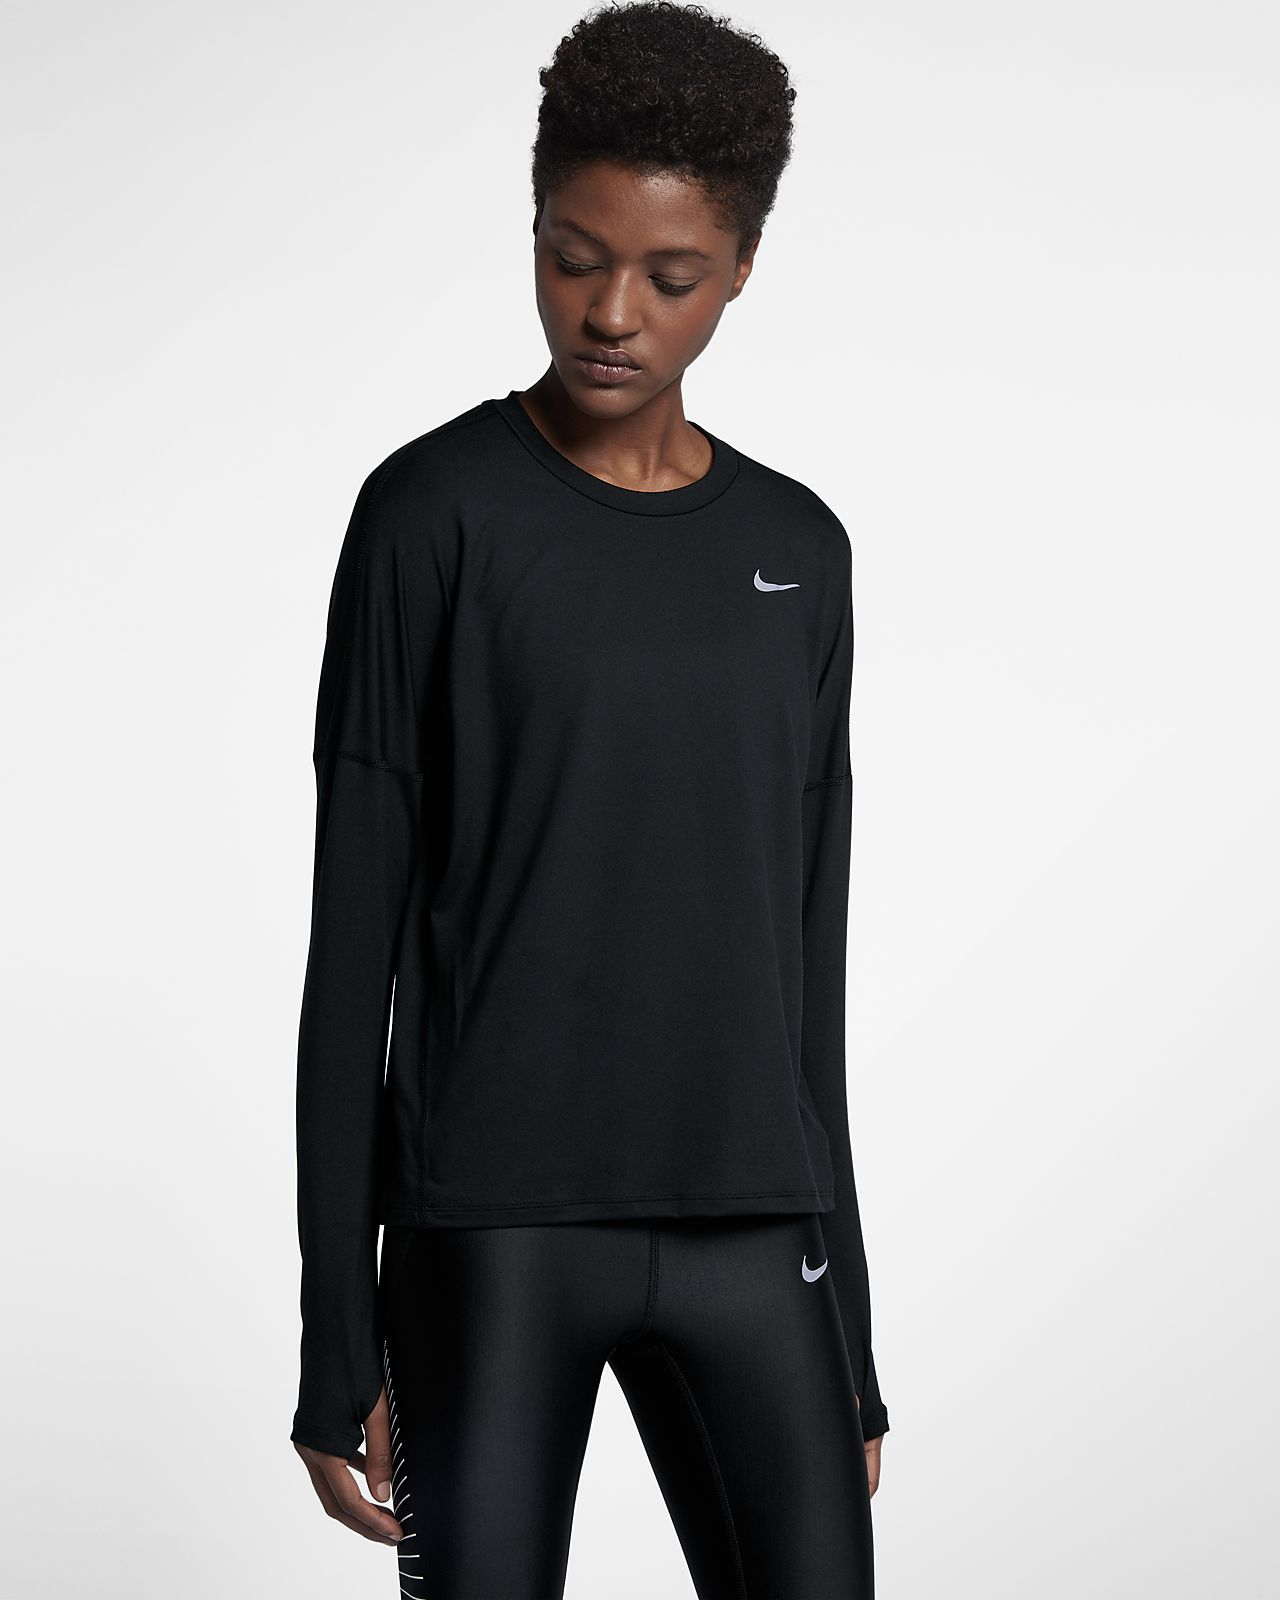 a62a1ef45c4 Nike Dri-FIT Element Women's Long Sleeve Running Top   clothes ...